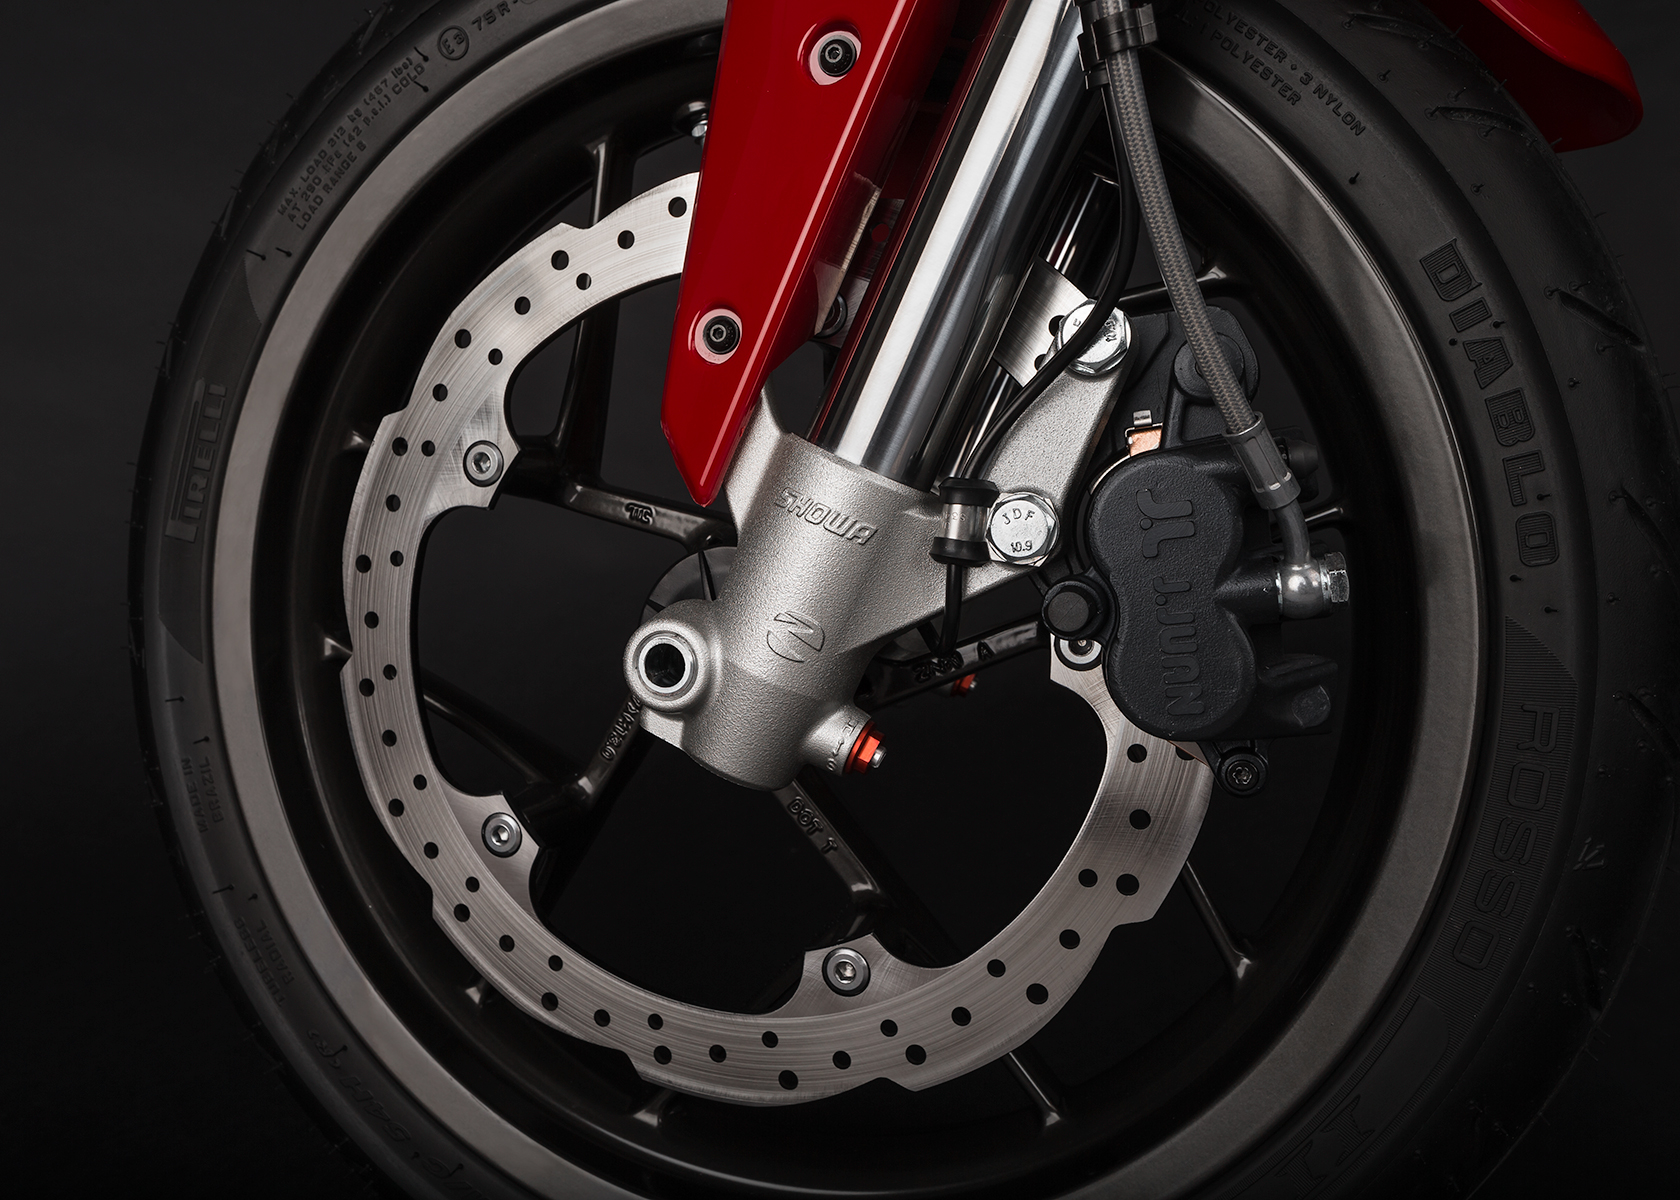 2015 Zero SR Electric Motorcycle: Front Brake